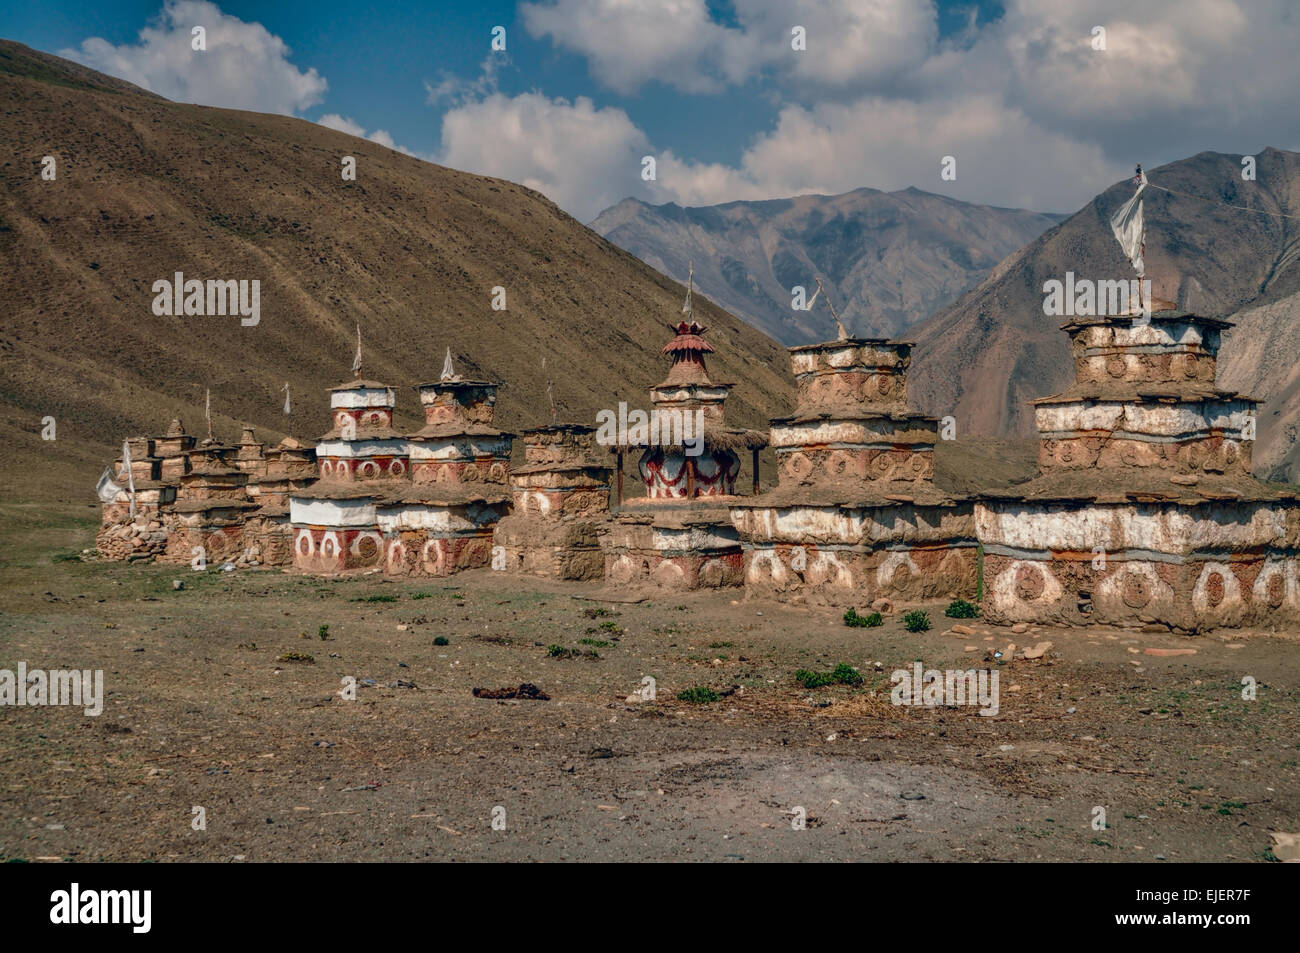 Scenic old shrines in Himalayas mountains in Nepal - Stock Image